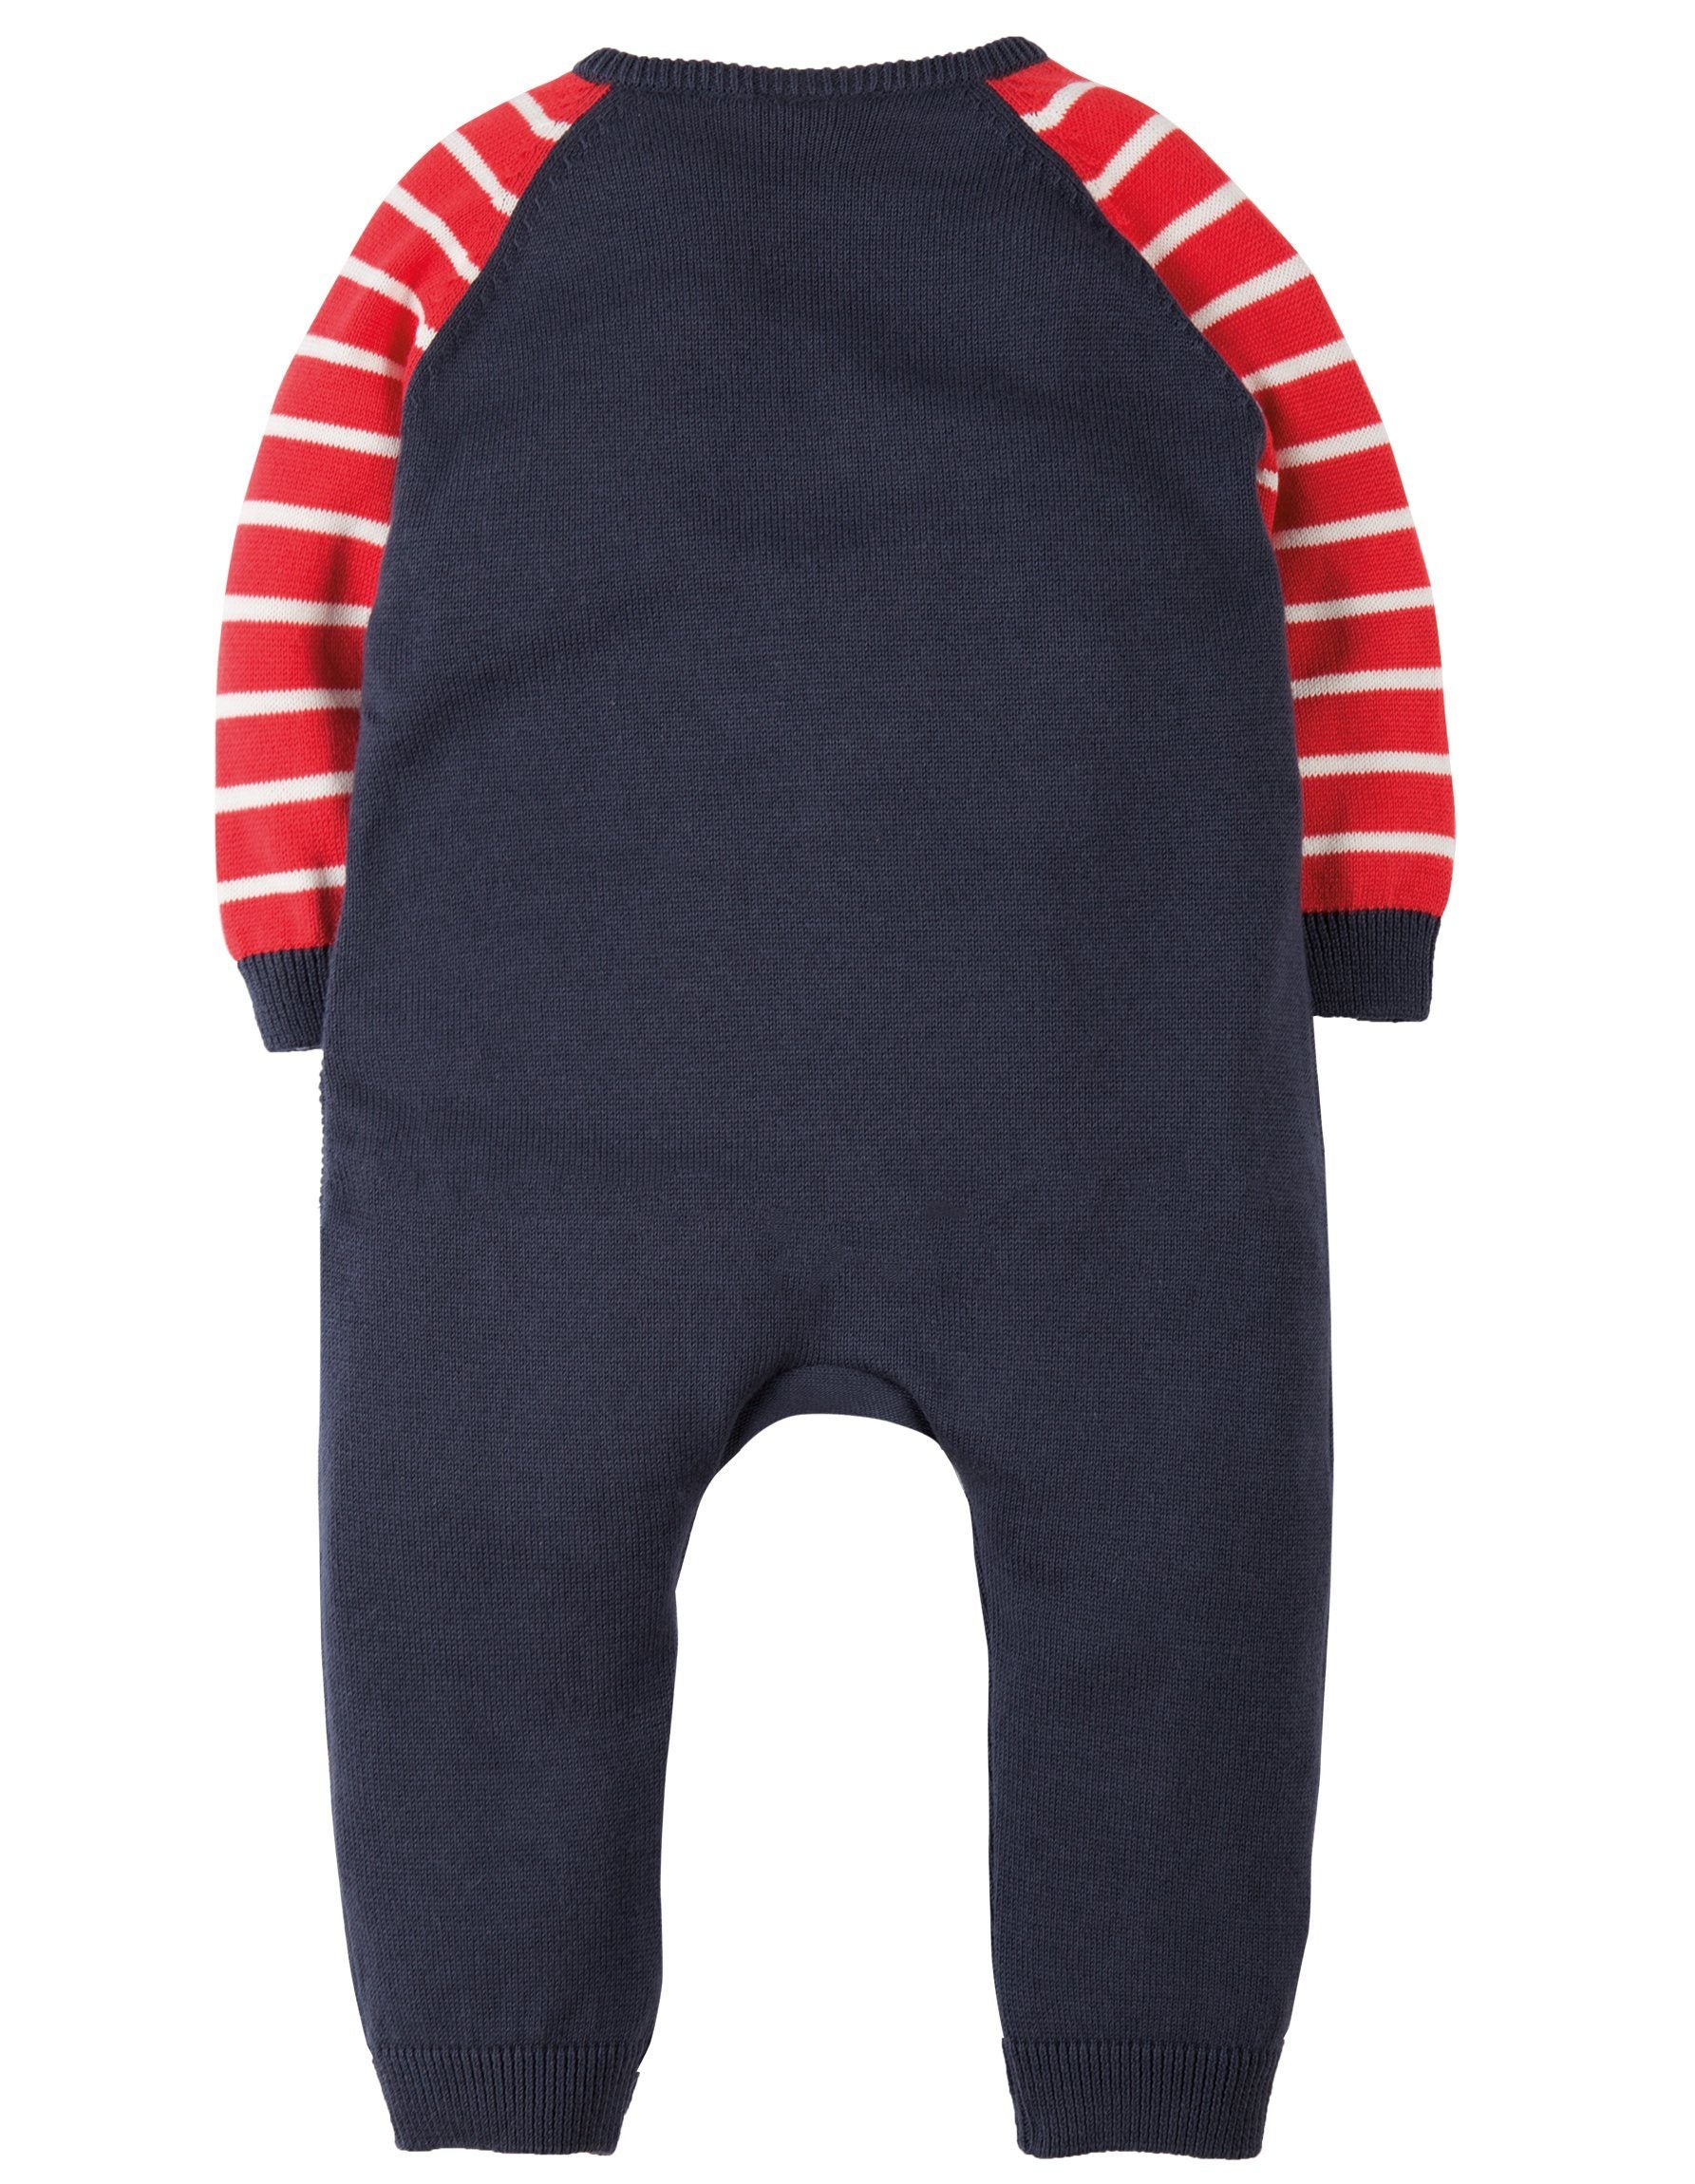 d431b5df6 Frugi Tractor Knitted Romper